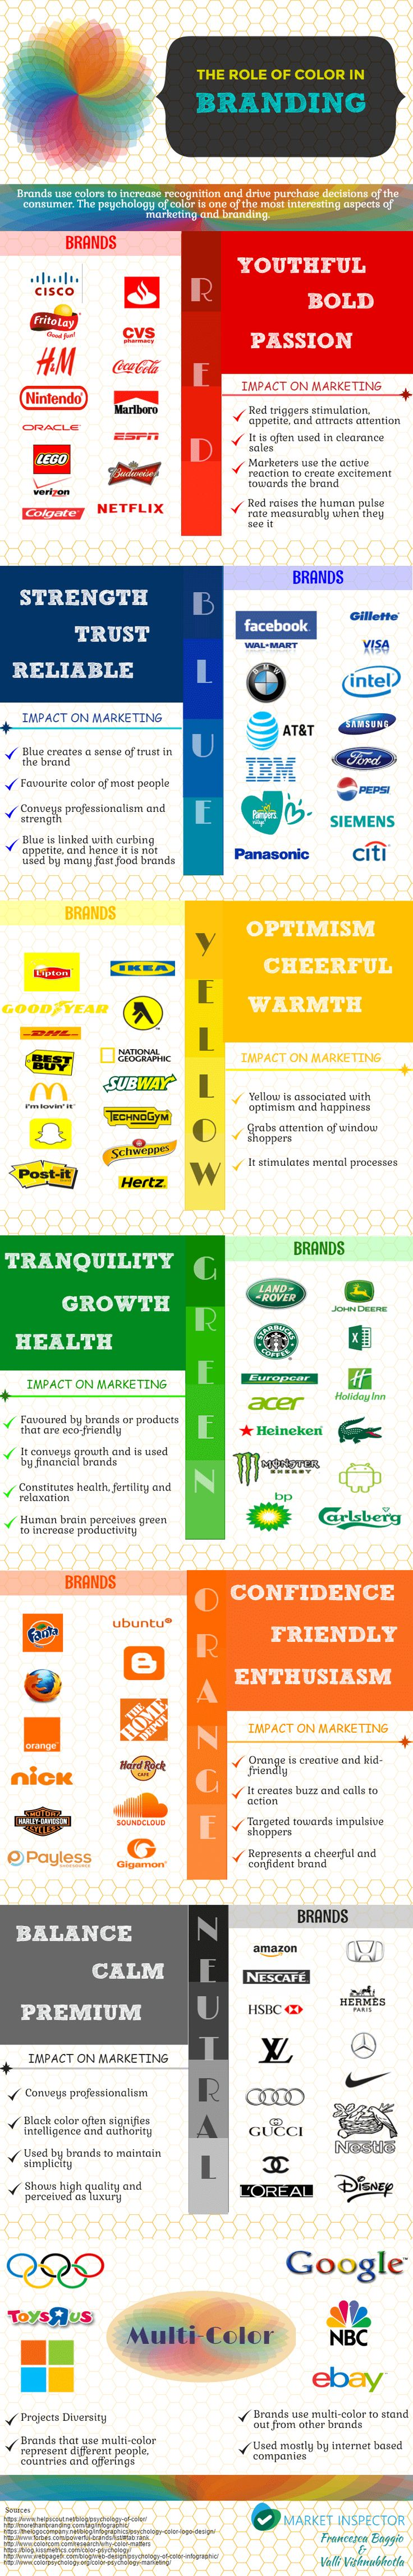 The color of your logo will determine how it is perceived.